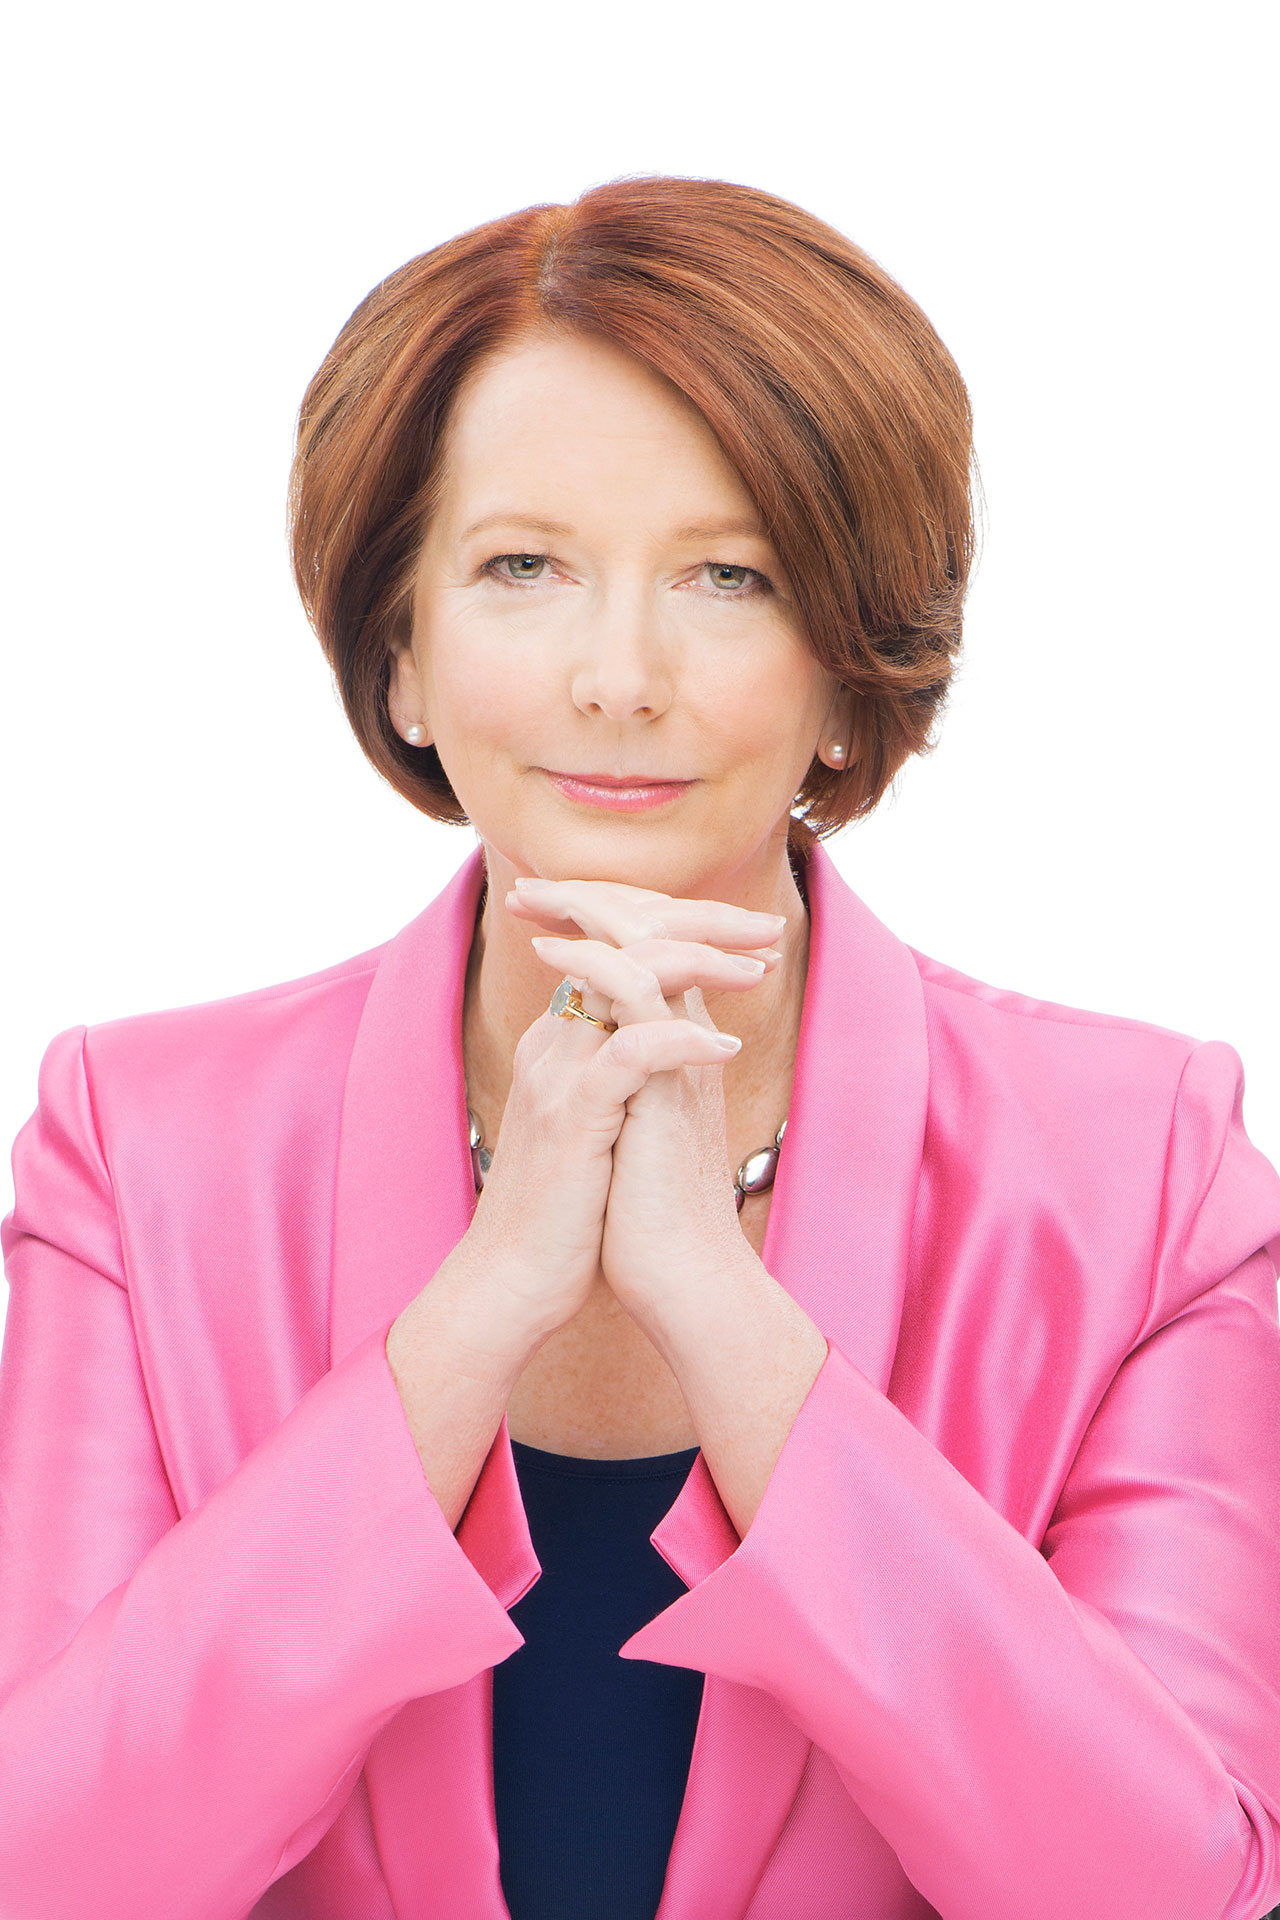 Julia Gillard Corporate Portrait Photographer Adelaide